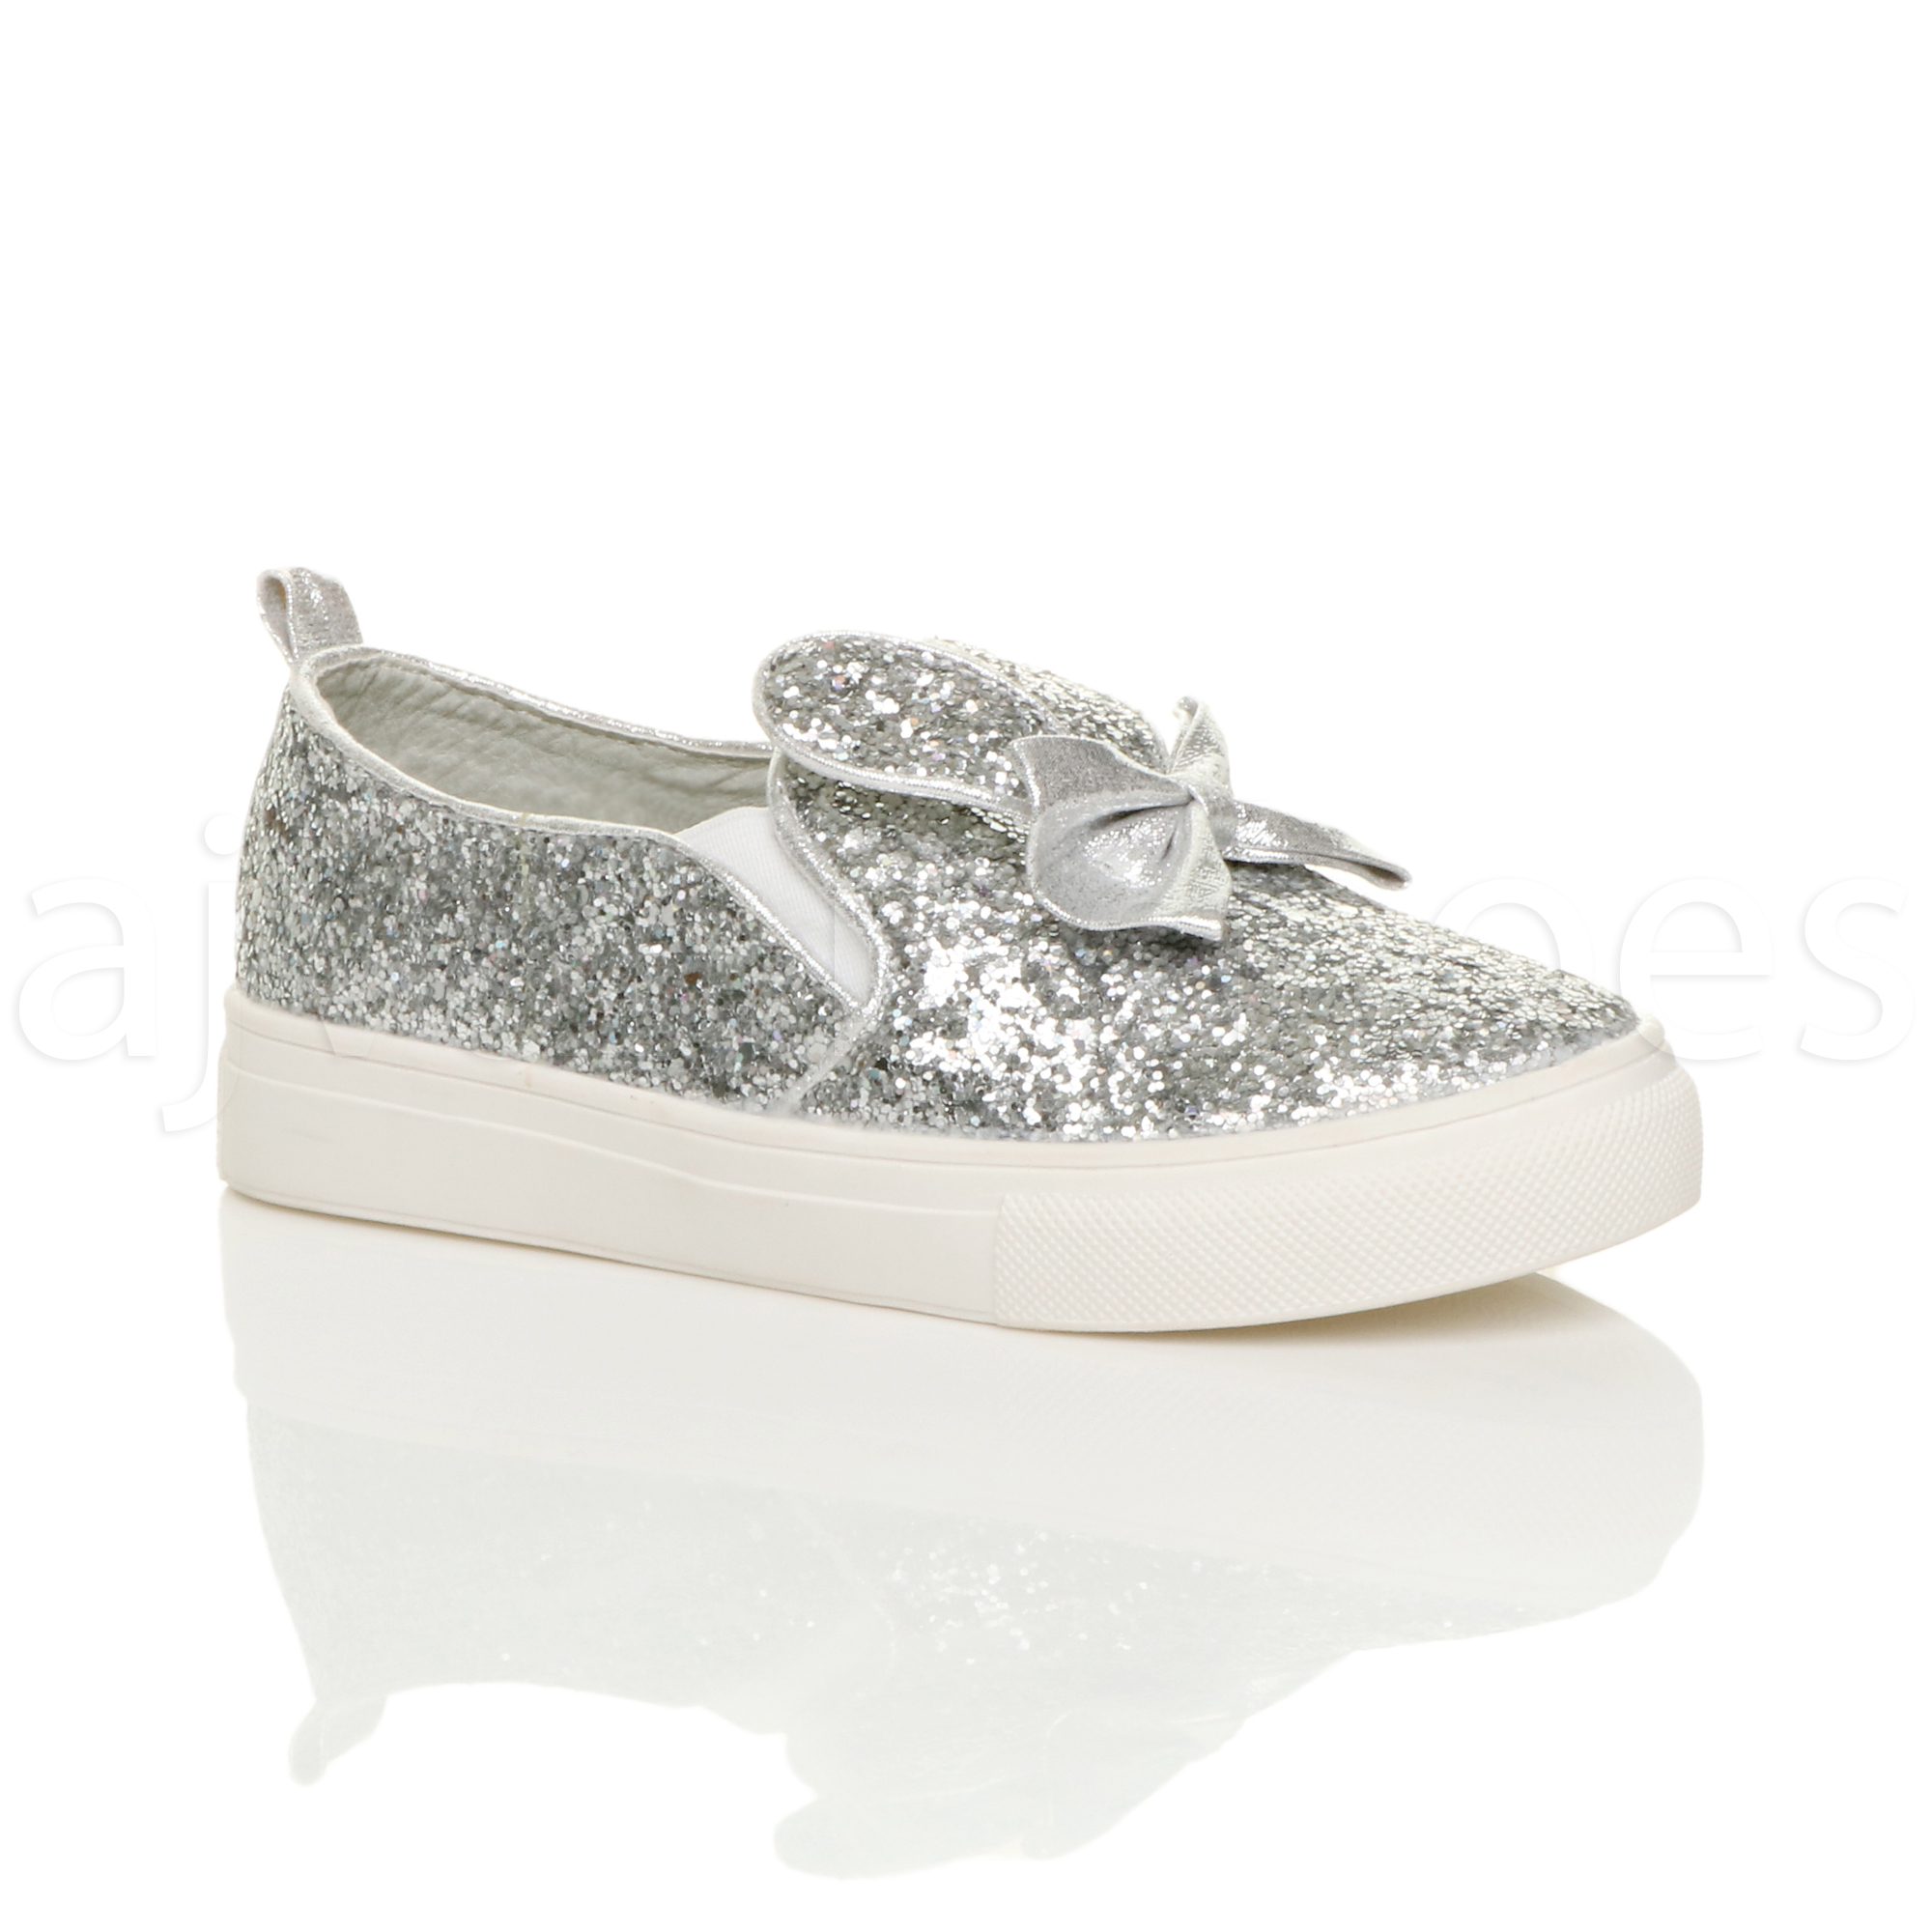 GIRLS-KIDS-CHILDRENS-FLAT-GLITTER-BOW-BUNNY-EARS-SLIP-ON-PLIMSOLES-PUMPS-SIZE